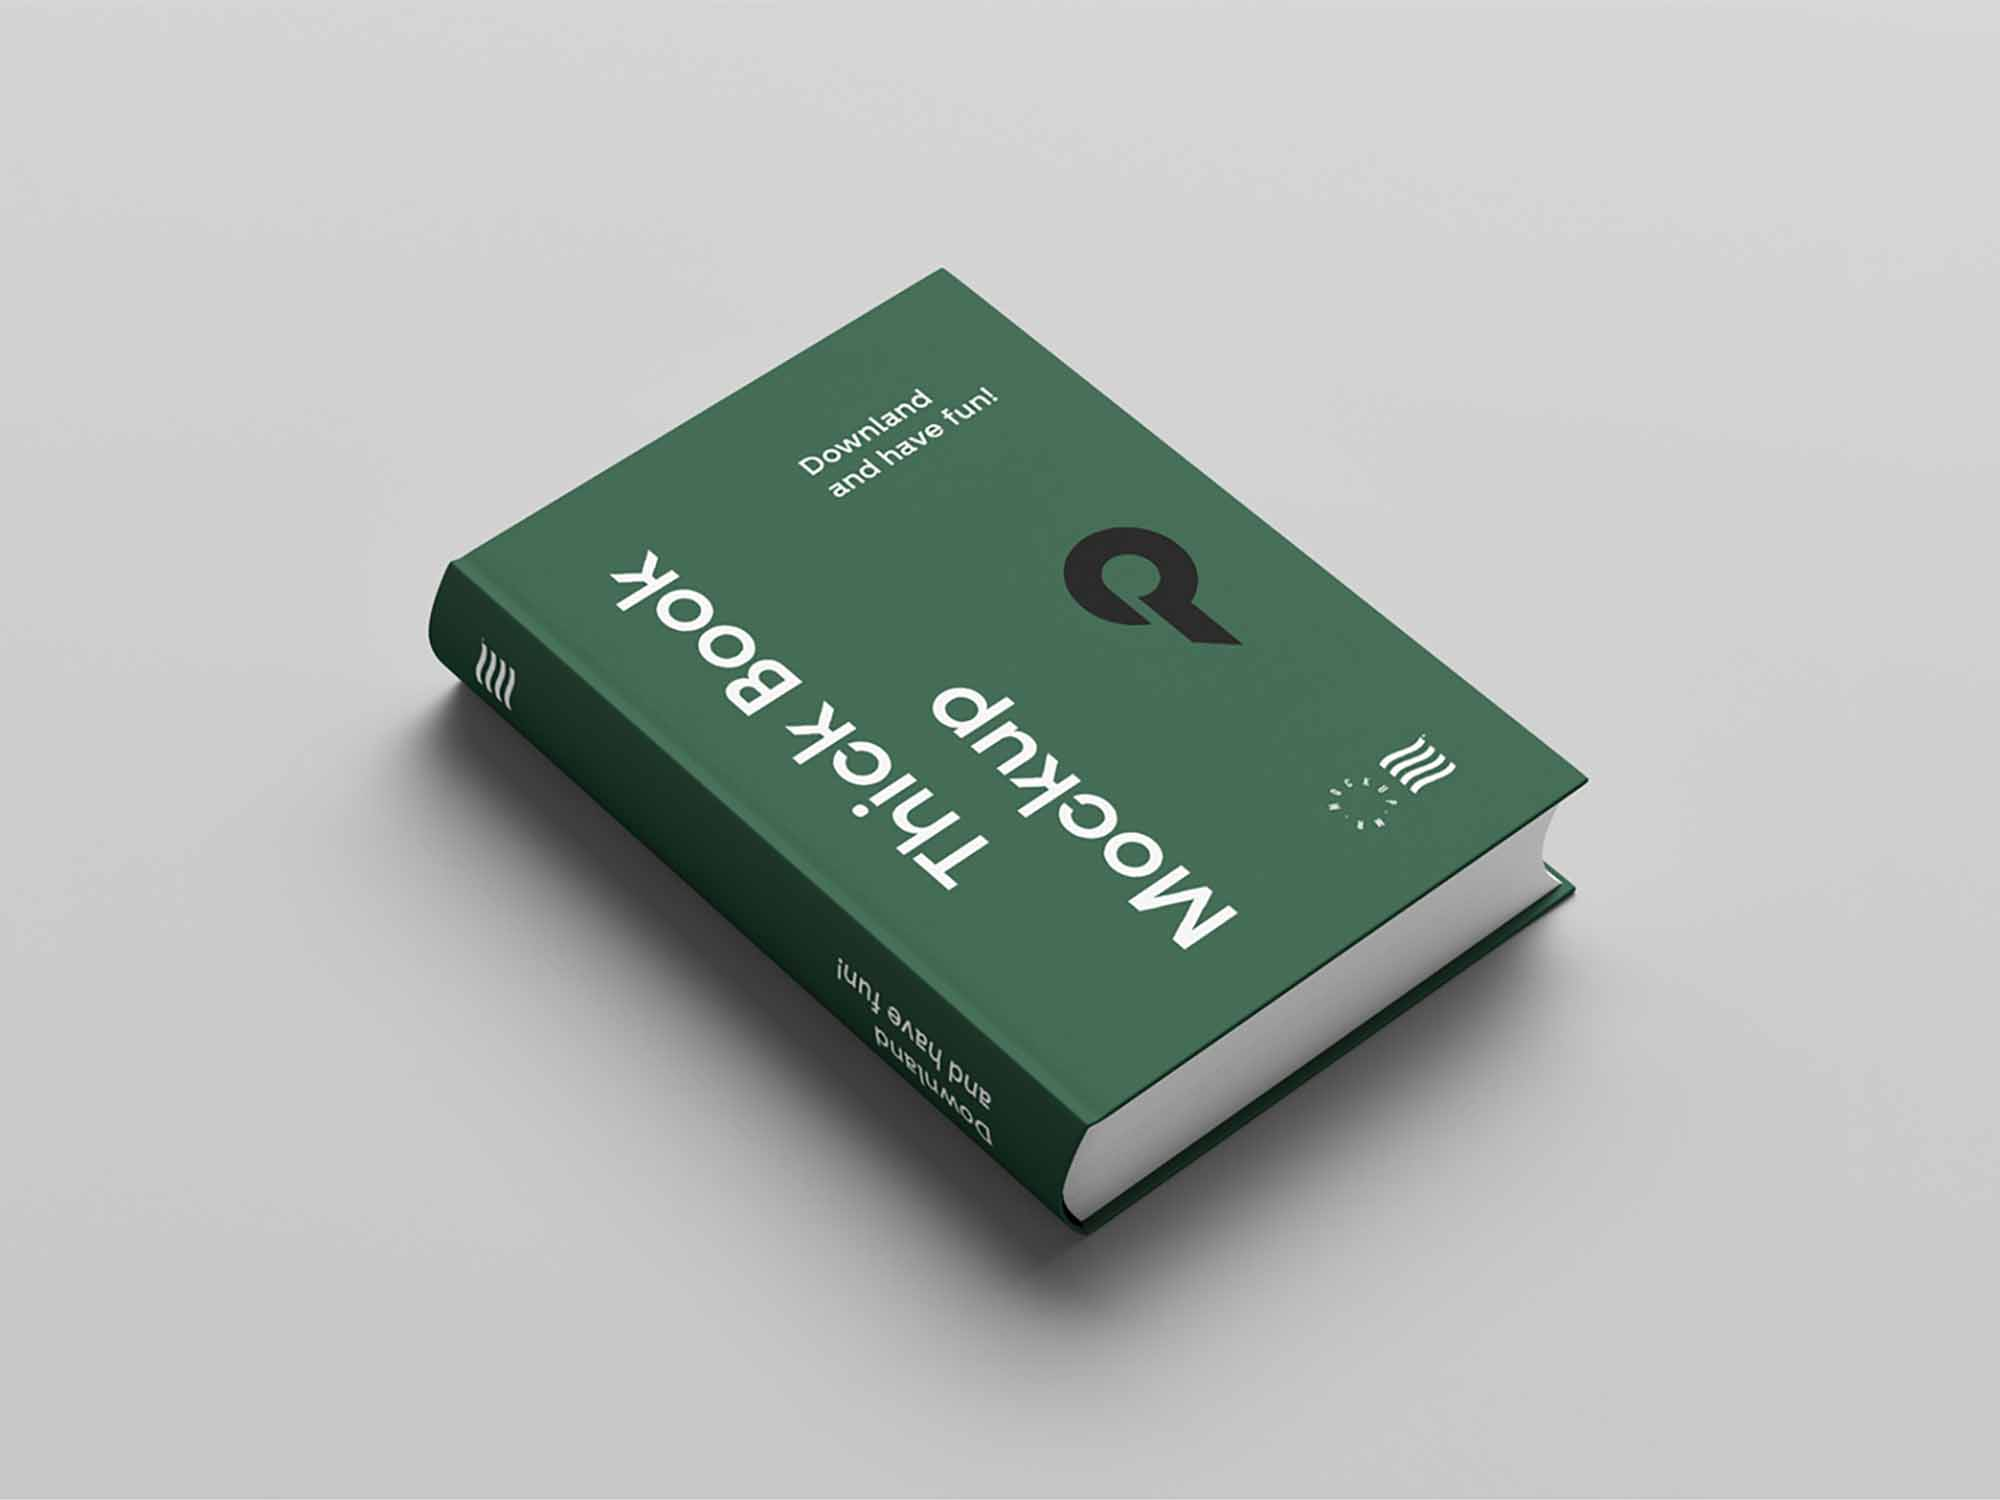 Angled Hard Cover Book Mockup